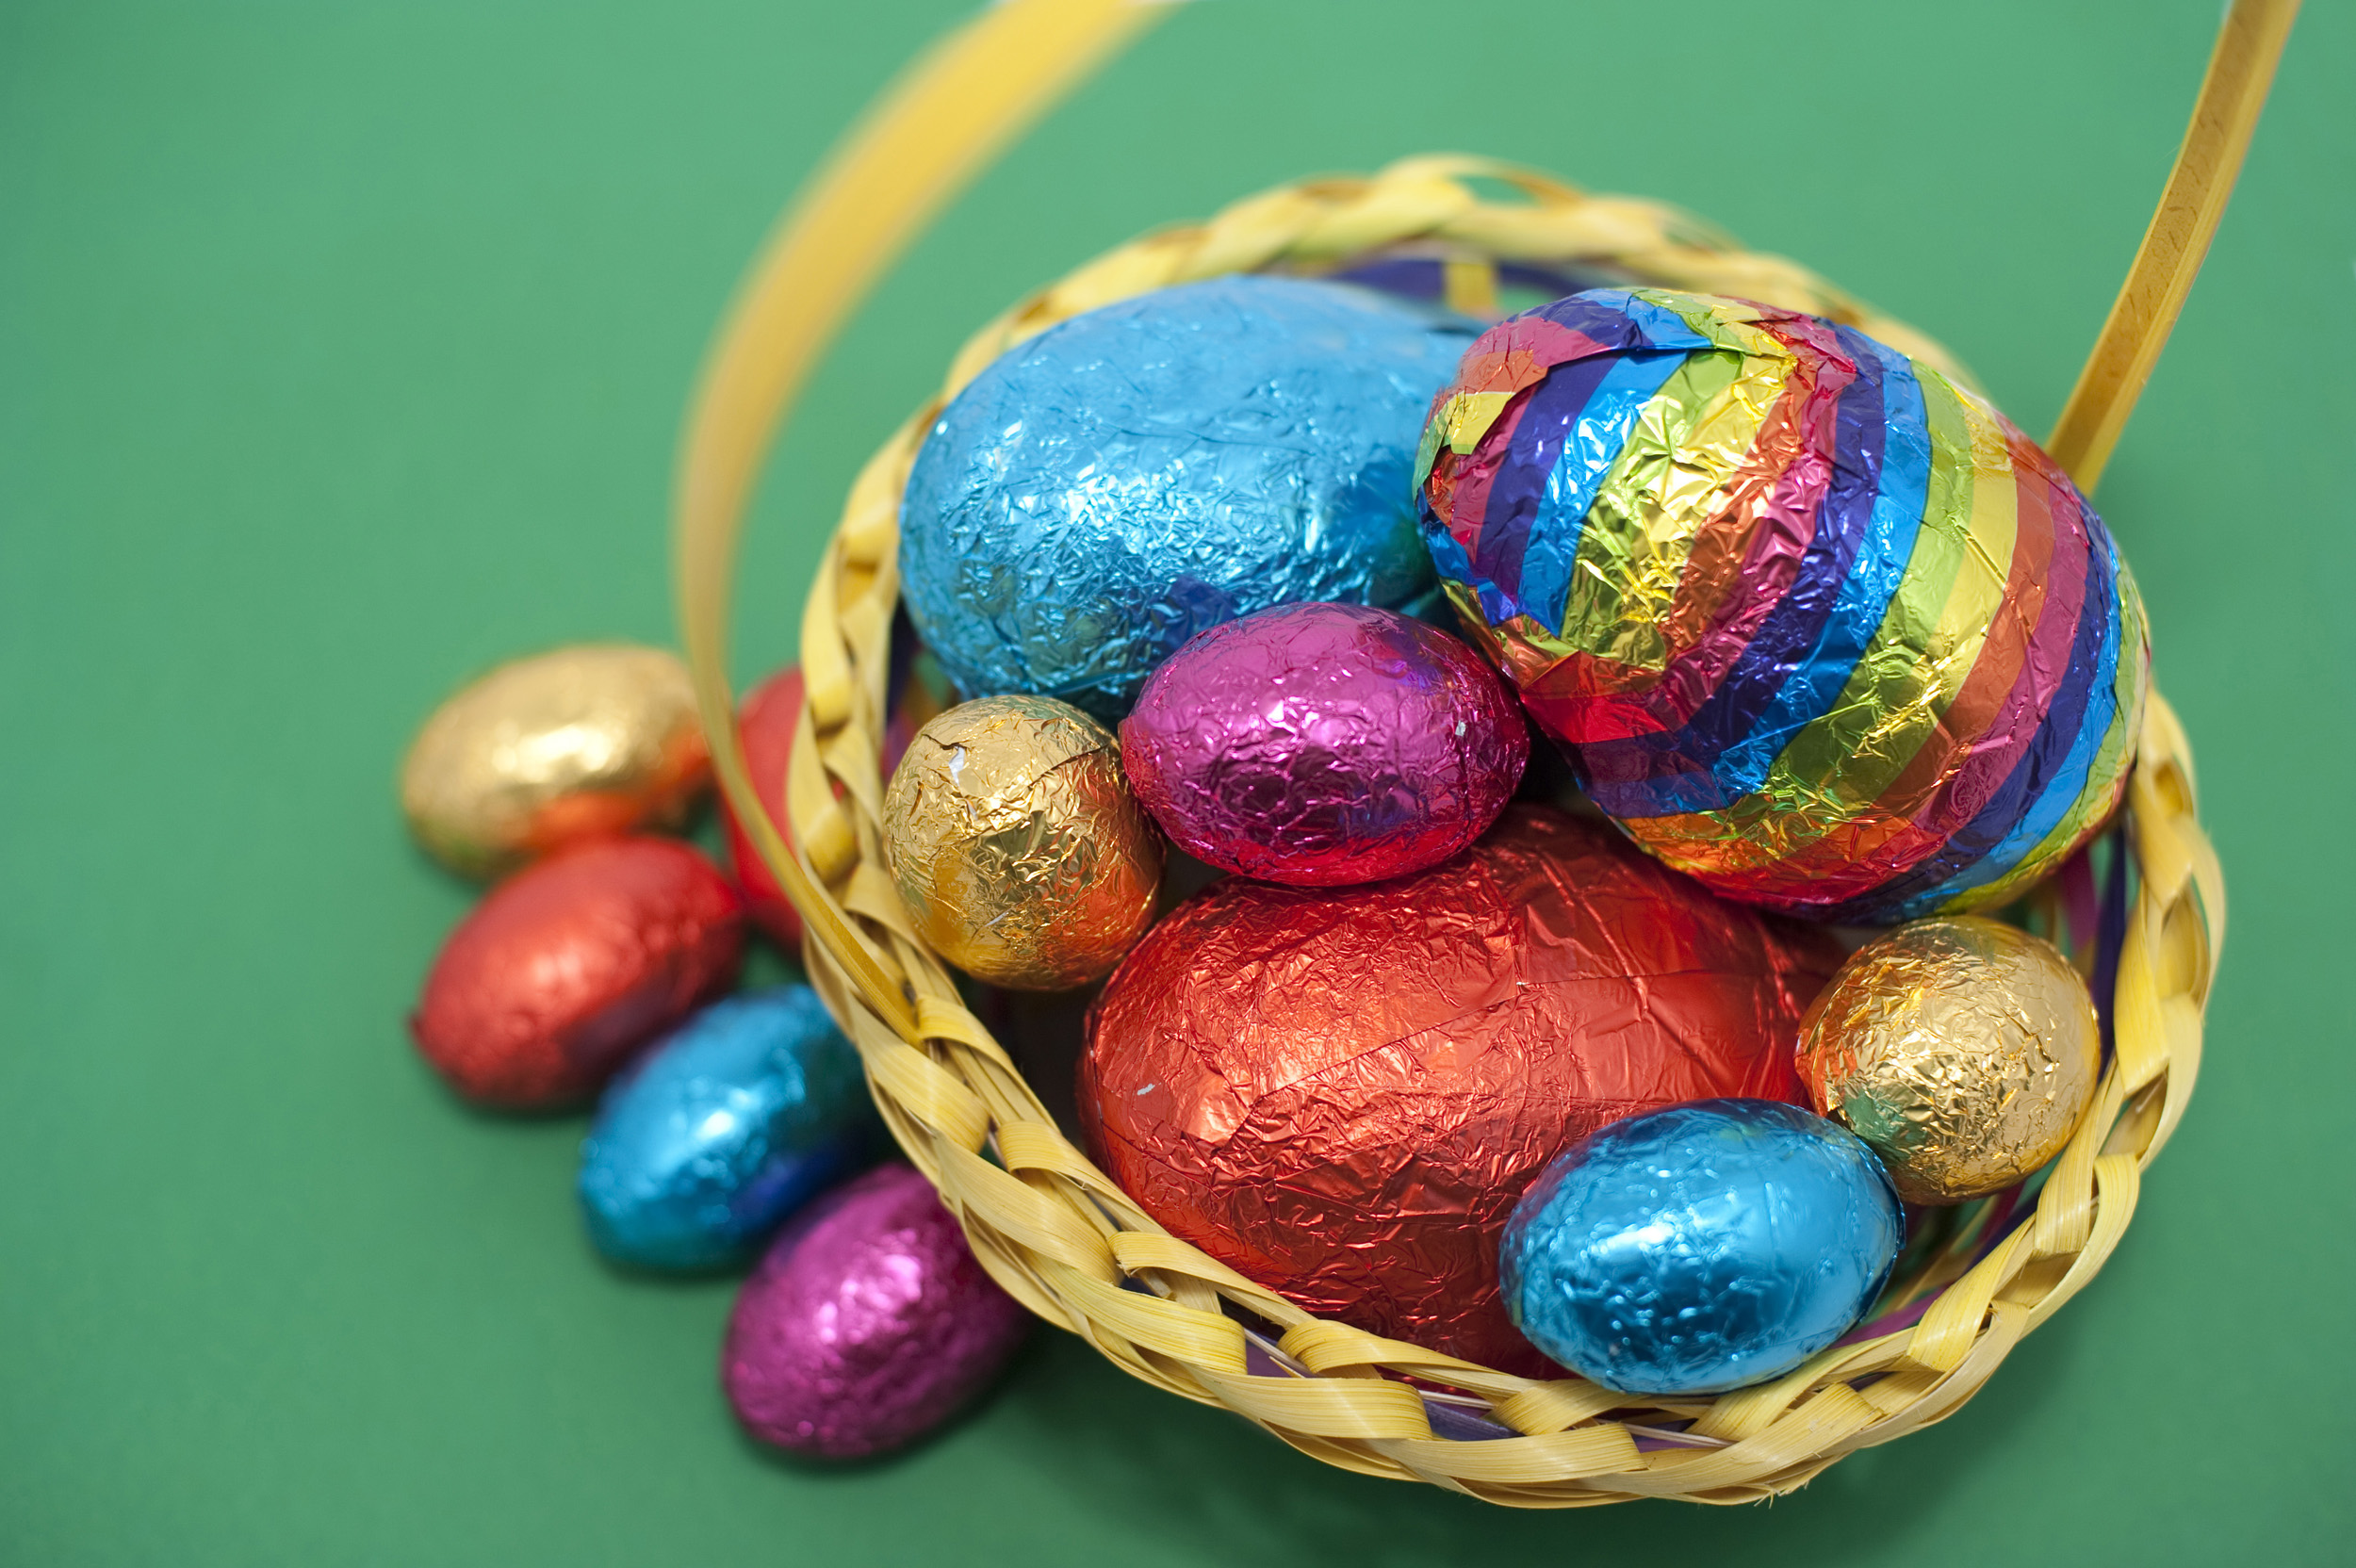 Foil Wrapped Chocolate Easter Eggs Nutrition